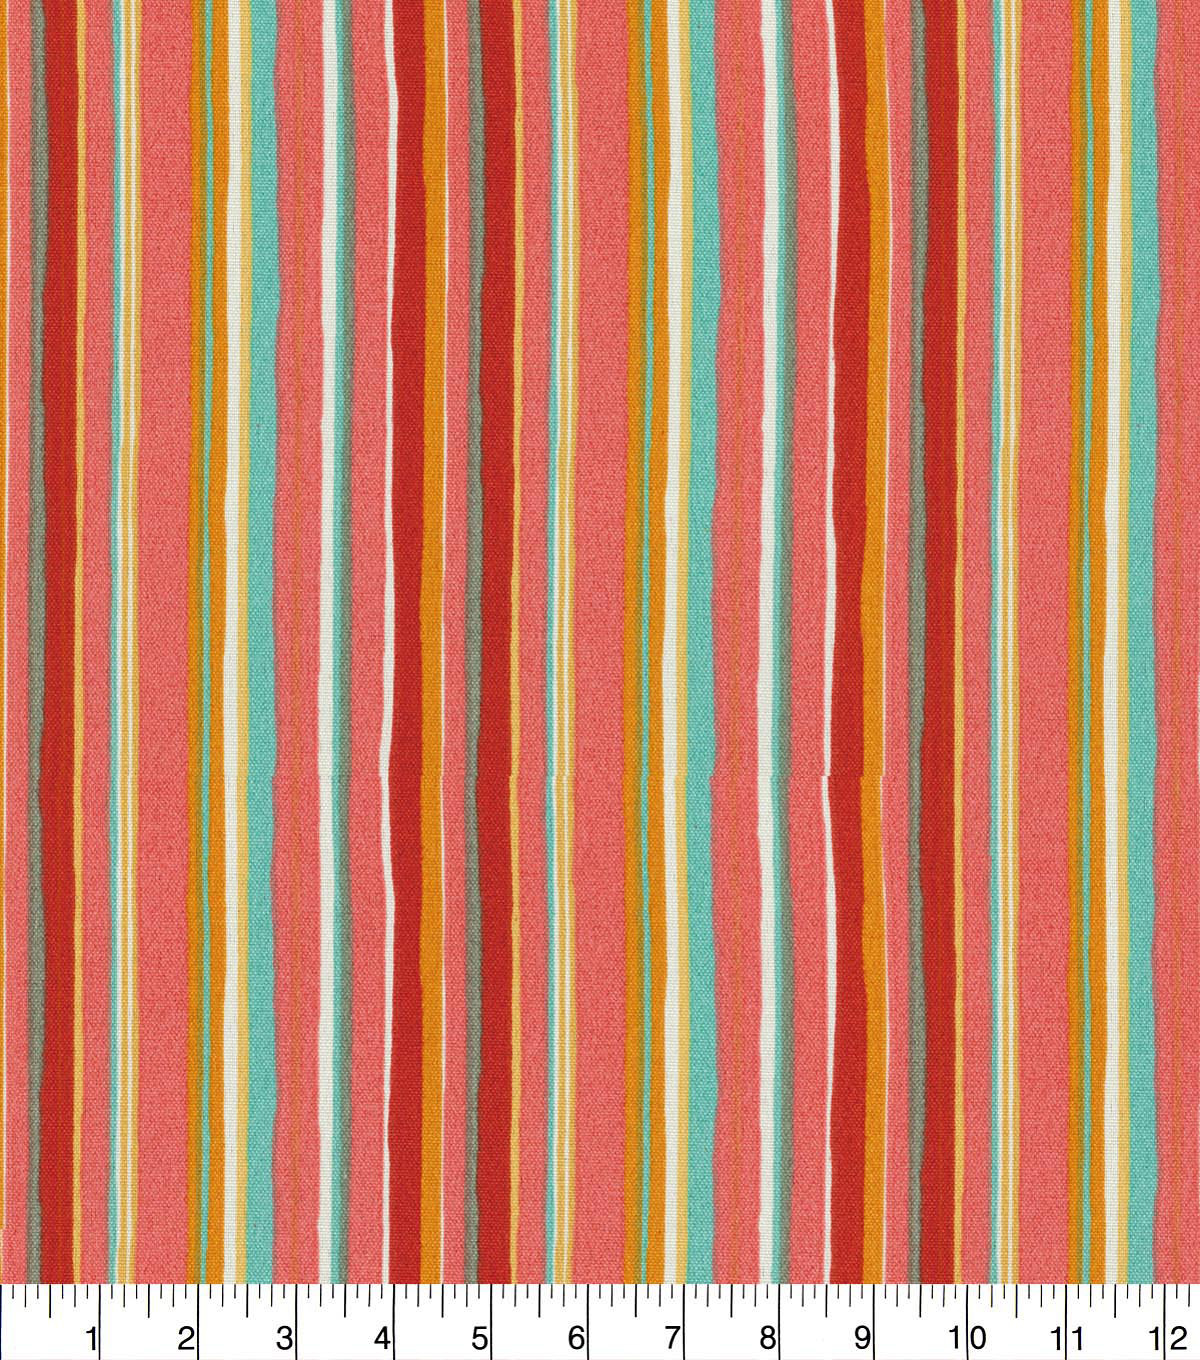 Dena Design Home Decor 8\u0022x8\u0022 Swatch-Cala Watermelon